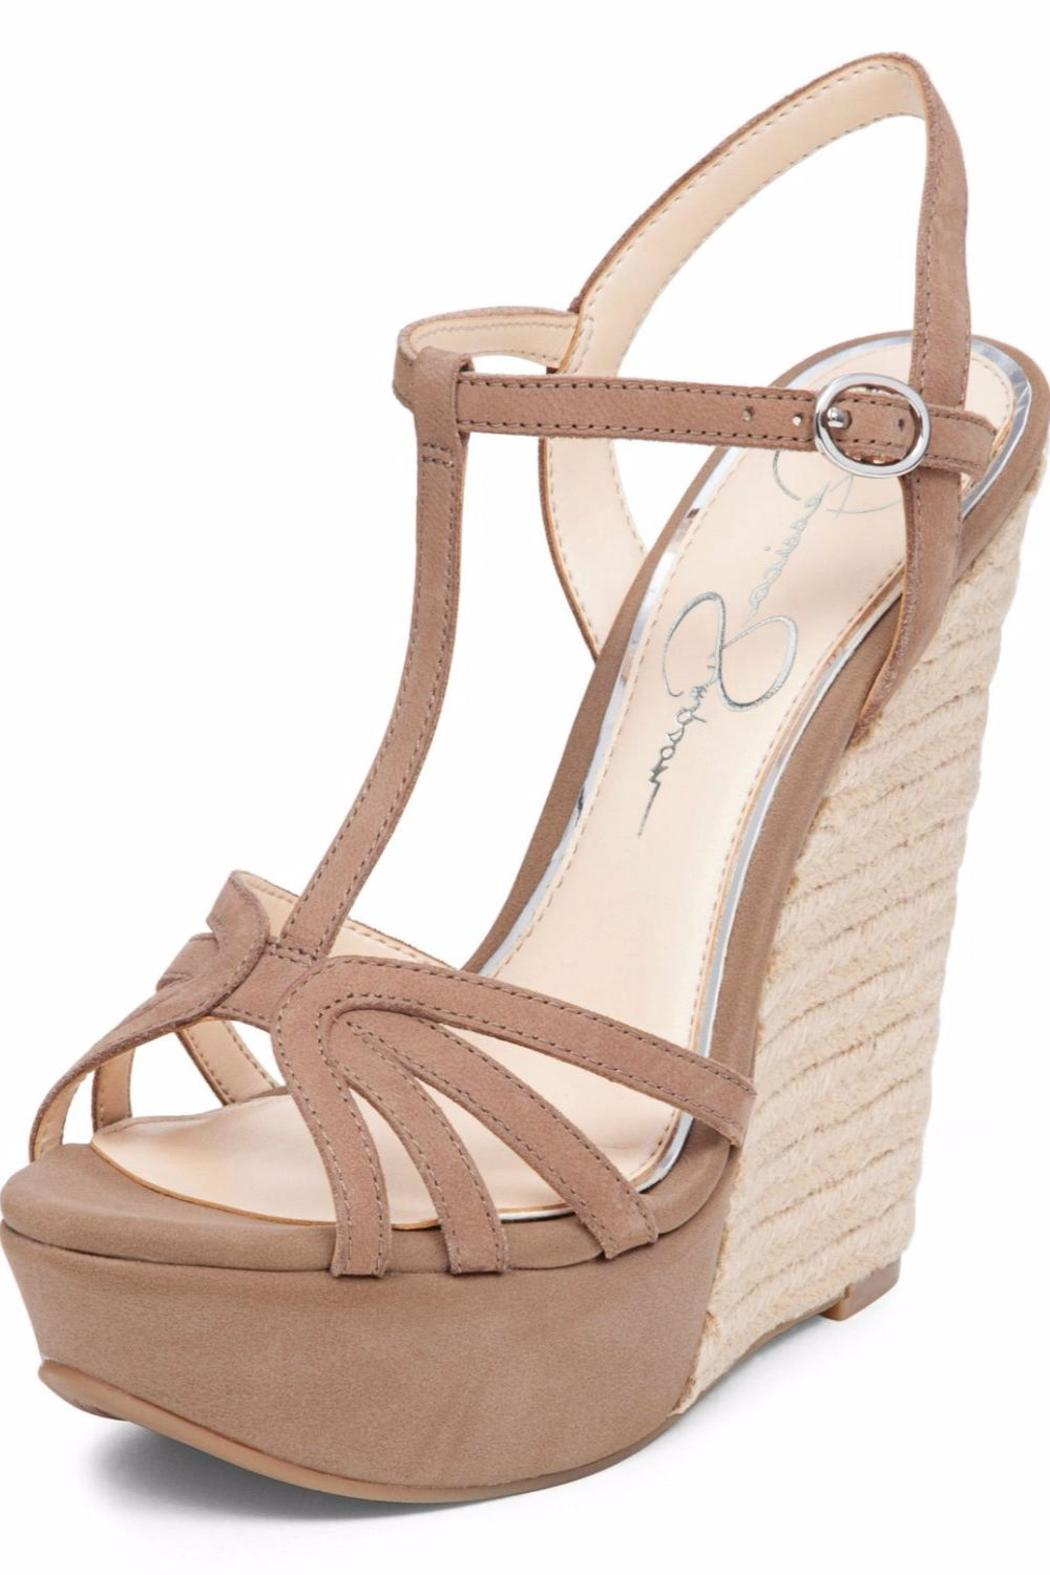 Jessica Simpson Bevin Espadrille Wedge From New Jersey By